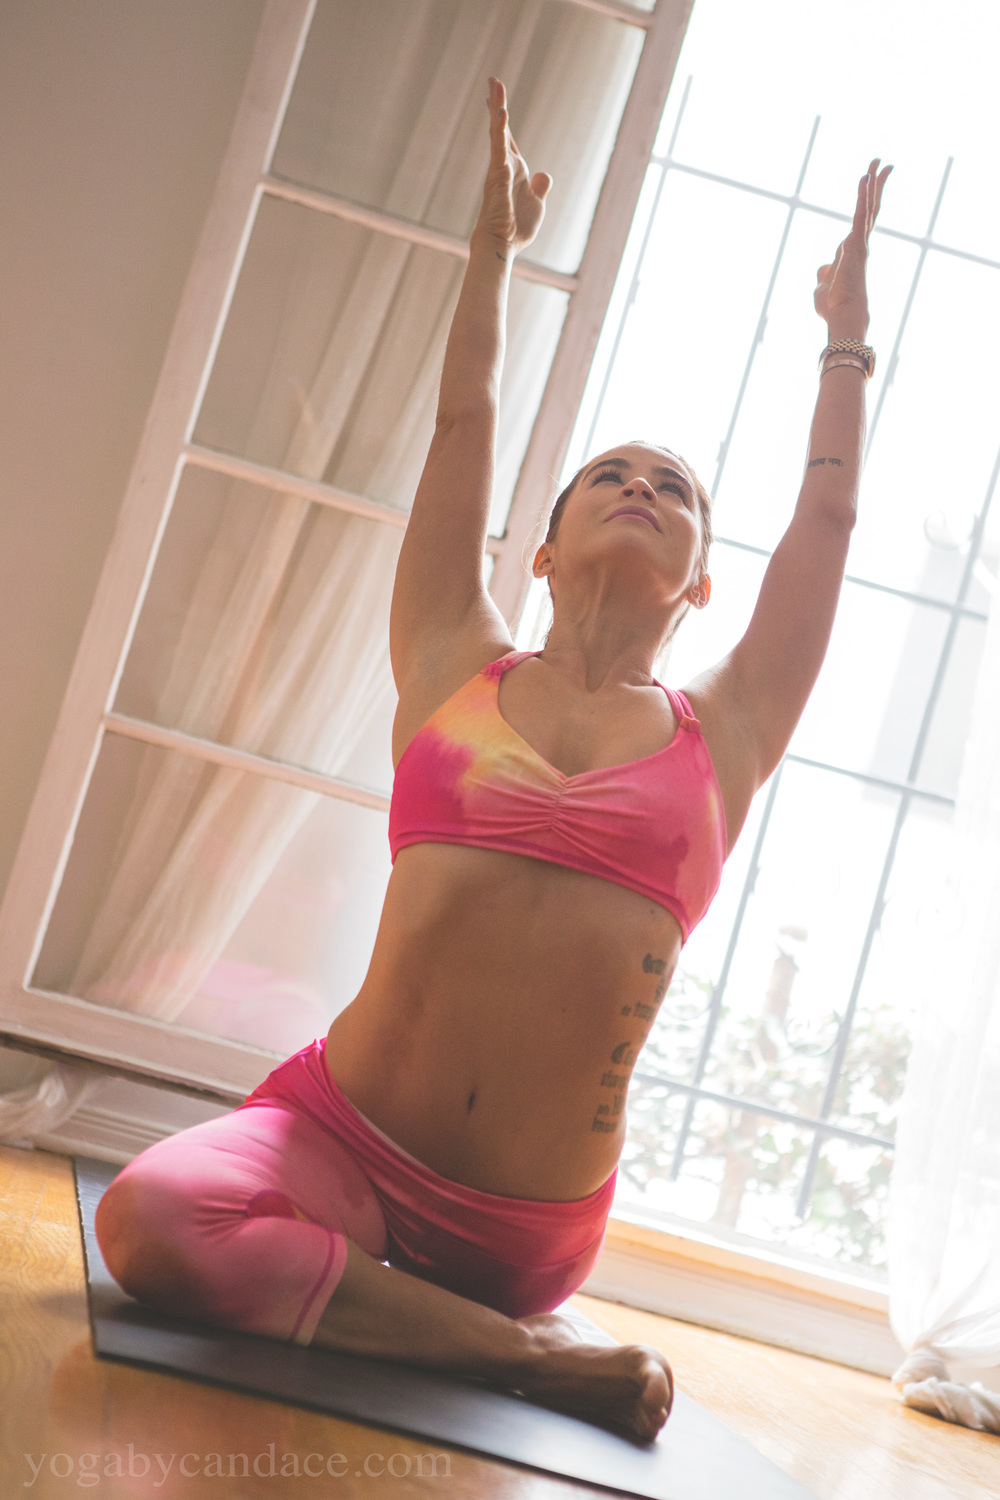 Pin it! Pigeon pose Wearing: Vibe bra & crops c/o Free People. Using: Gaiam mat.